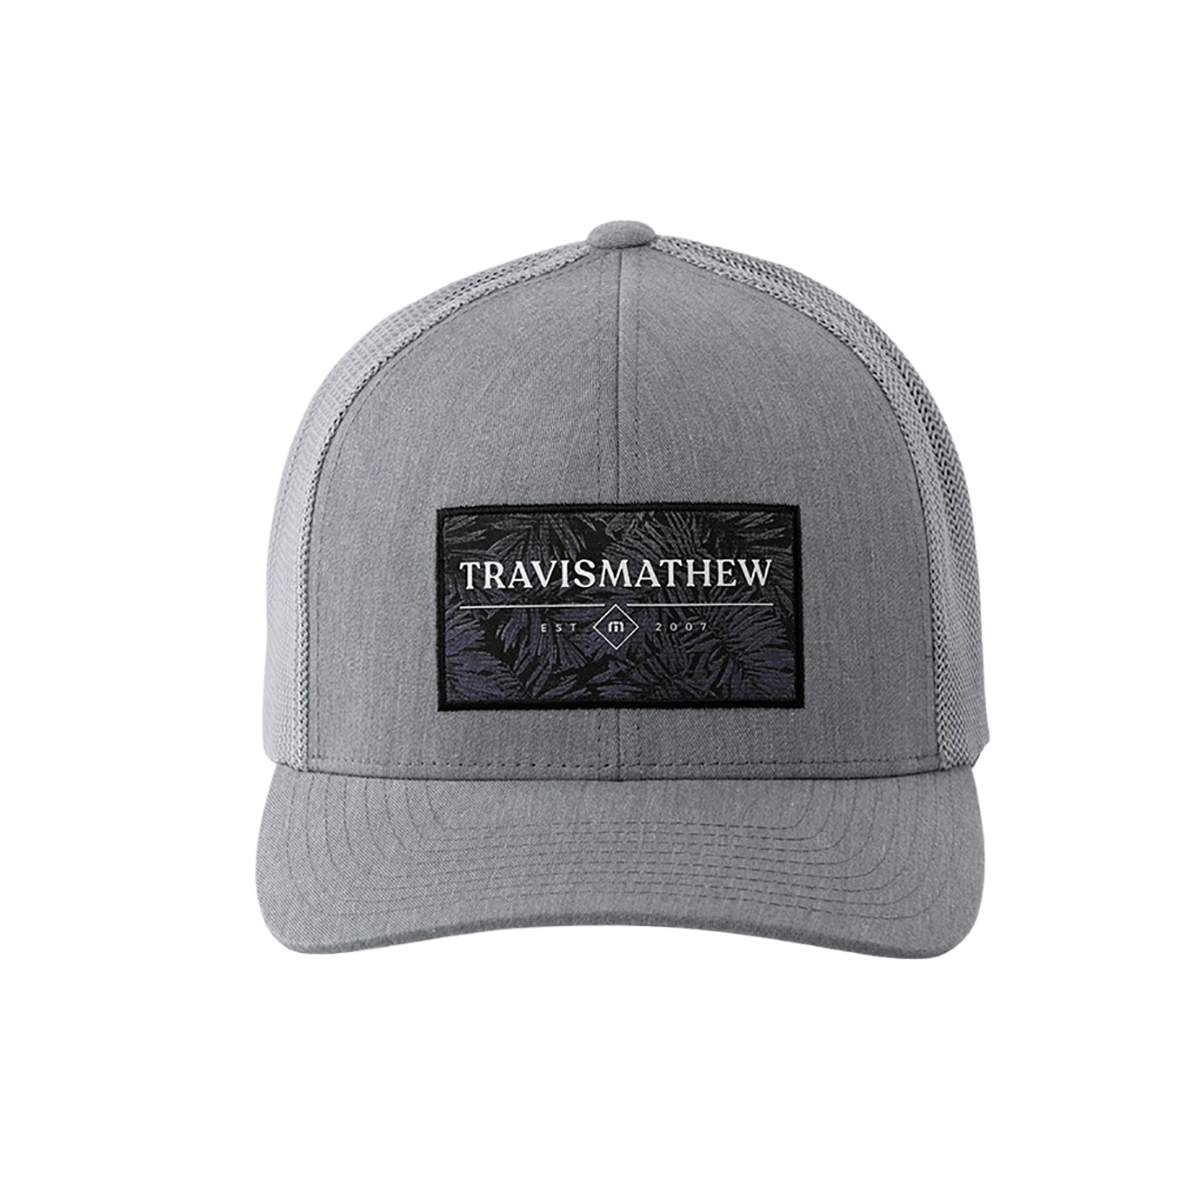 Travis Mathew Scuba Certified Adjustable Cap